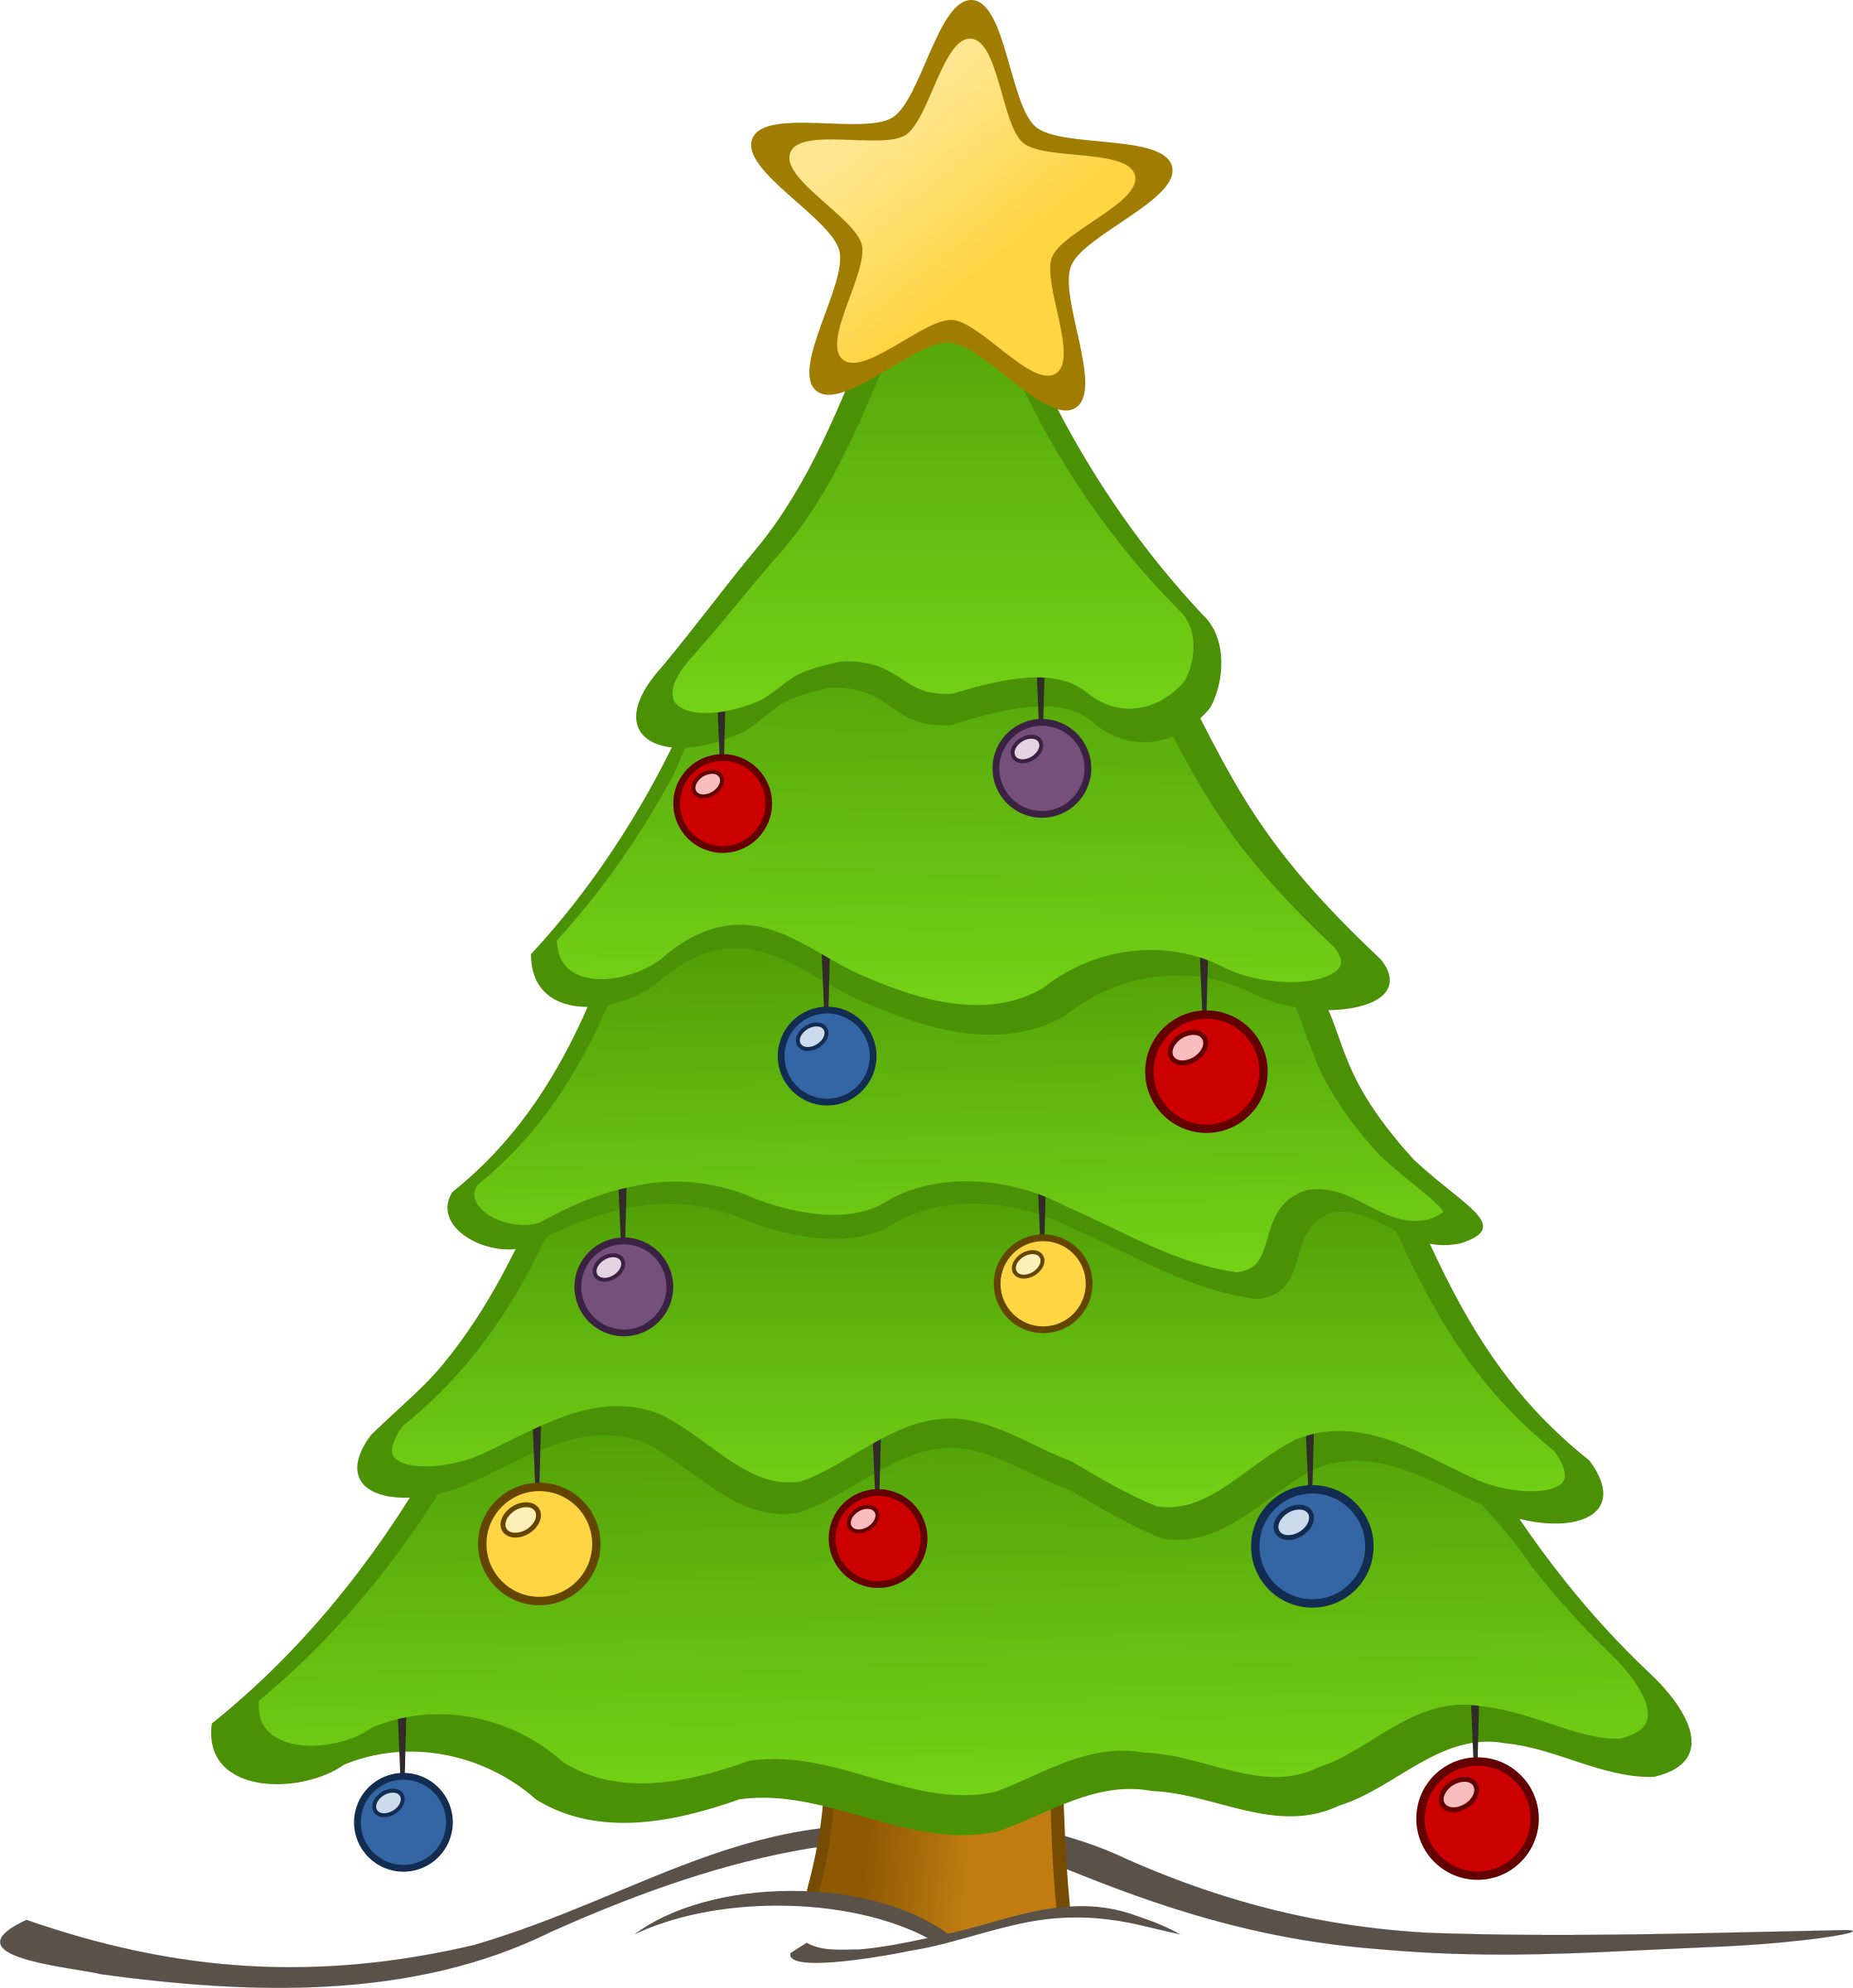 Turkey looking at christmas tree clipart image royalty free stock Christmas Tree For Drawing at GetDrawings.com | Free for personal ... image royalty free stock